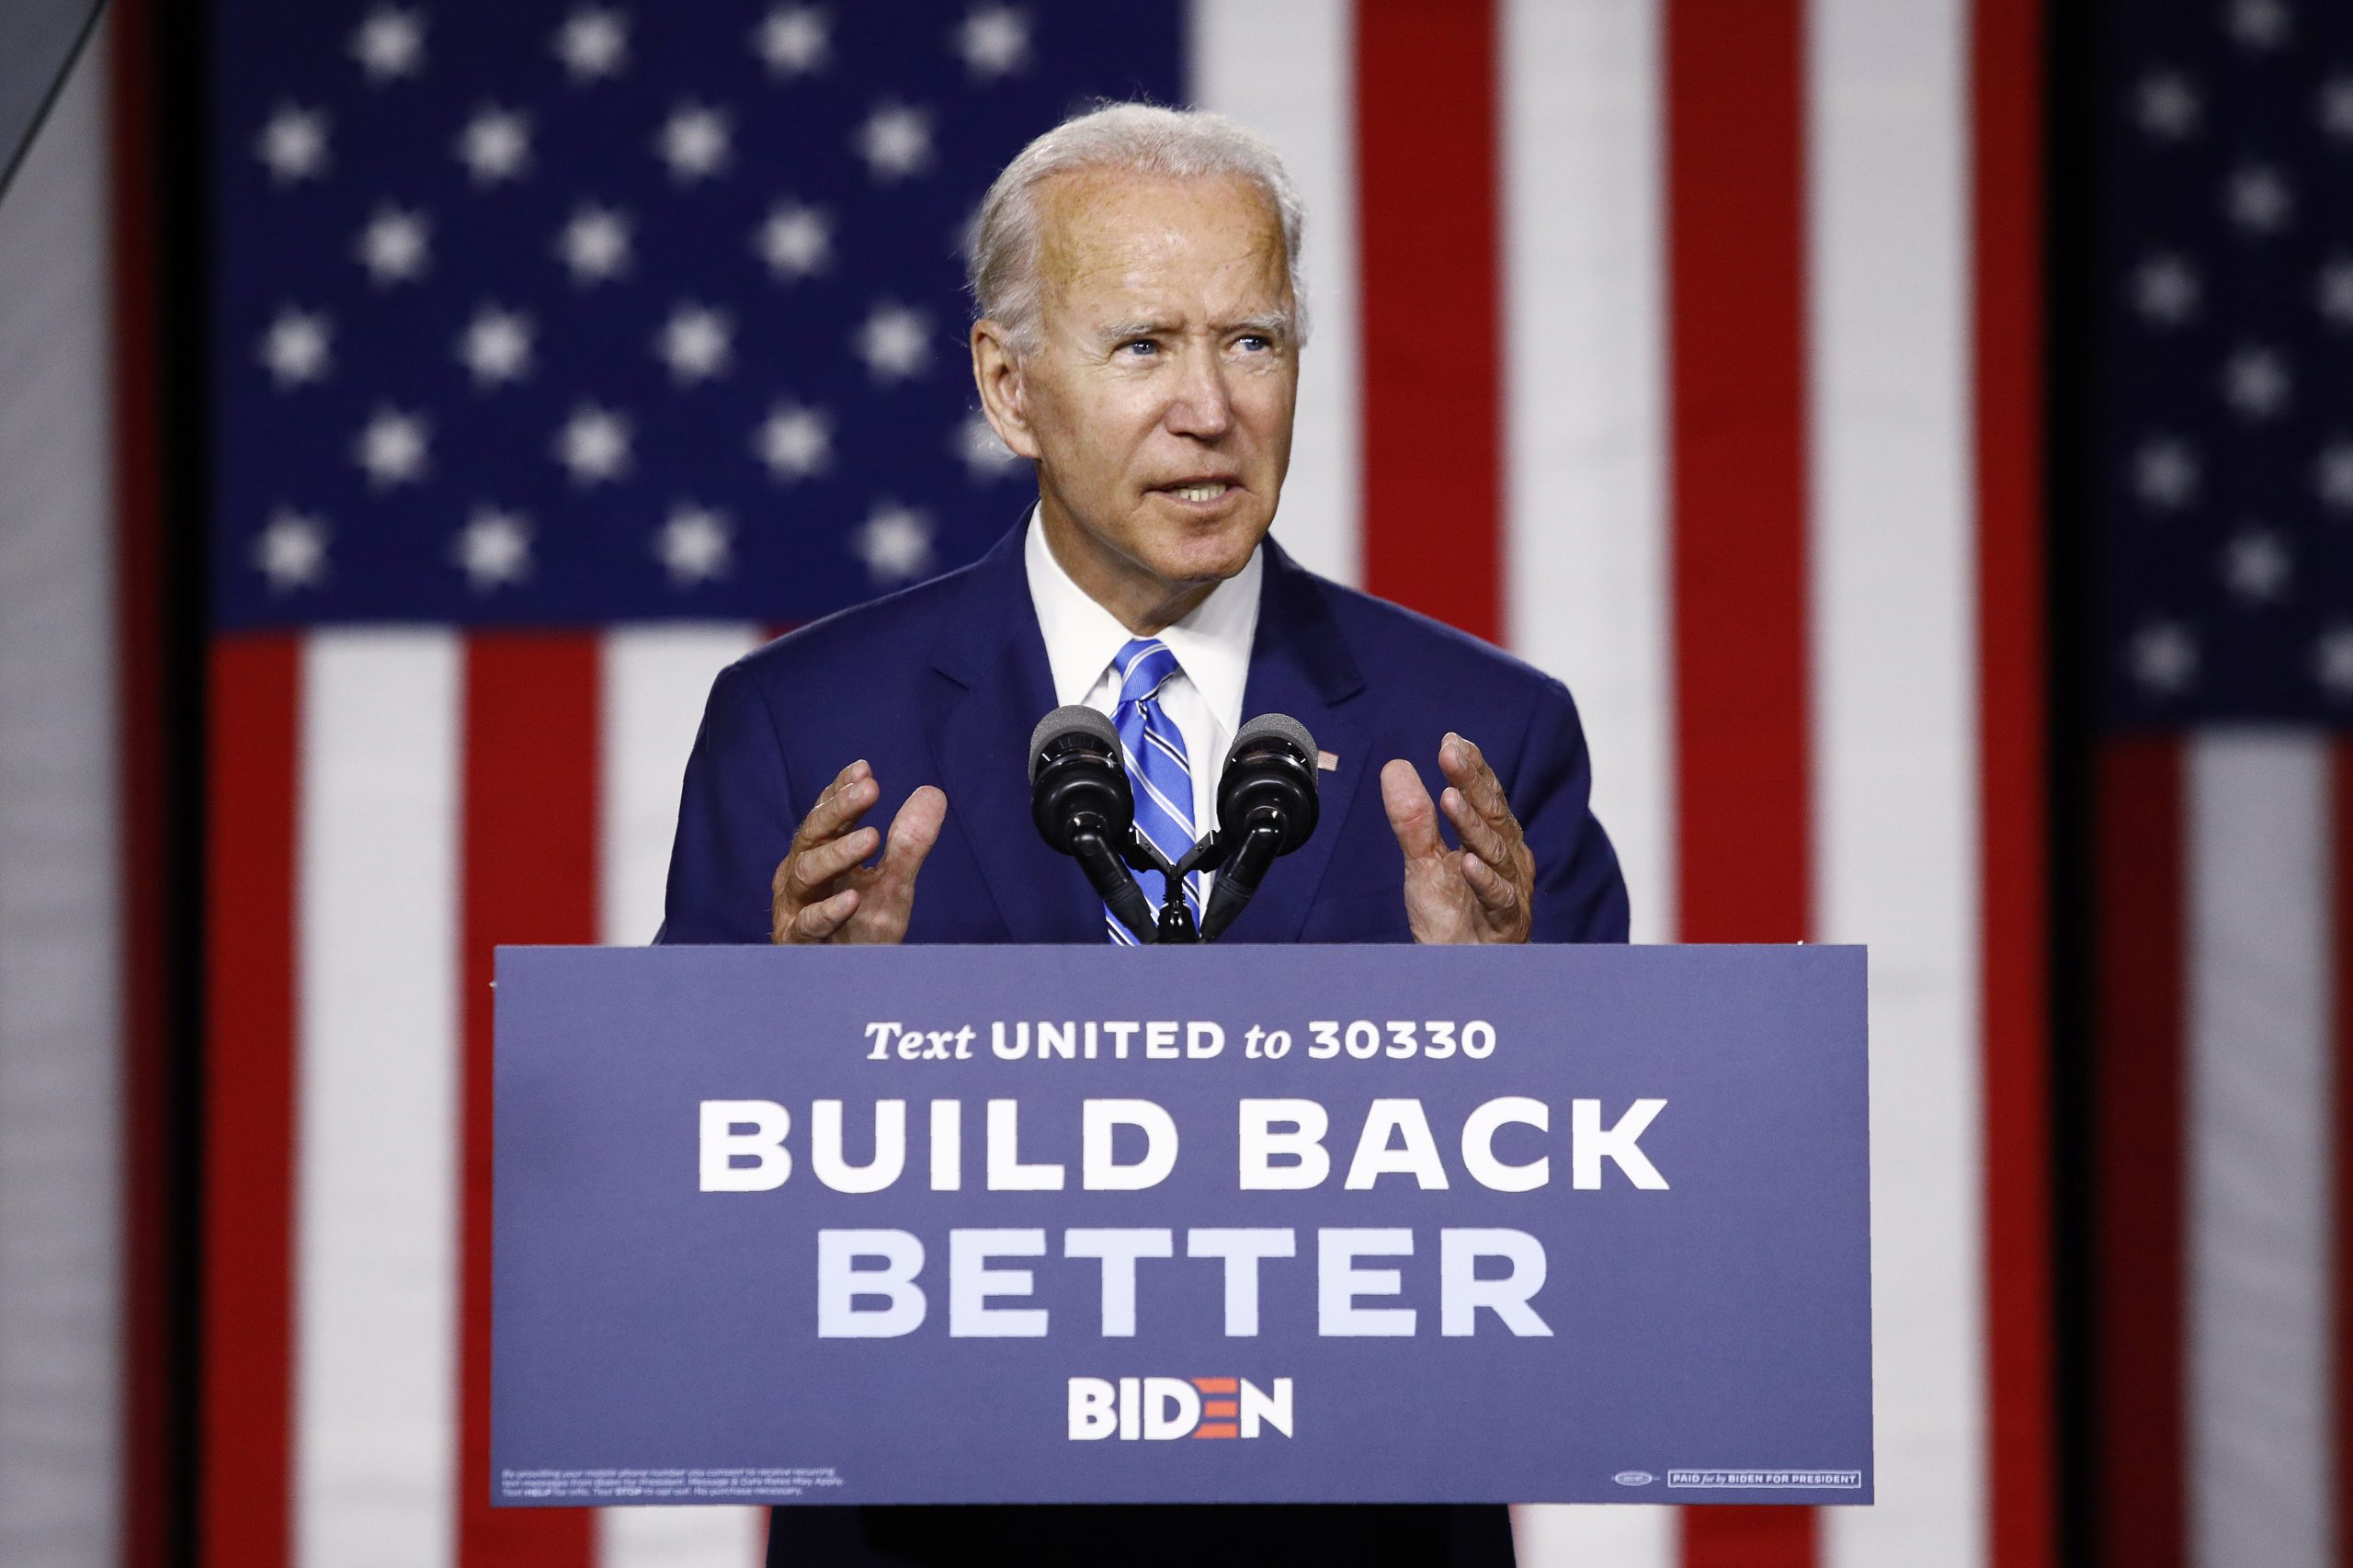 Biden Announces $775B Plan to Boost the Caregiver Economy, Support In-Home Care Providers